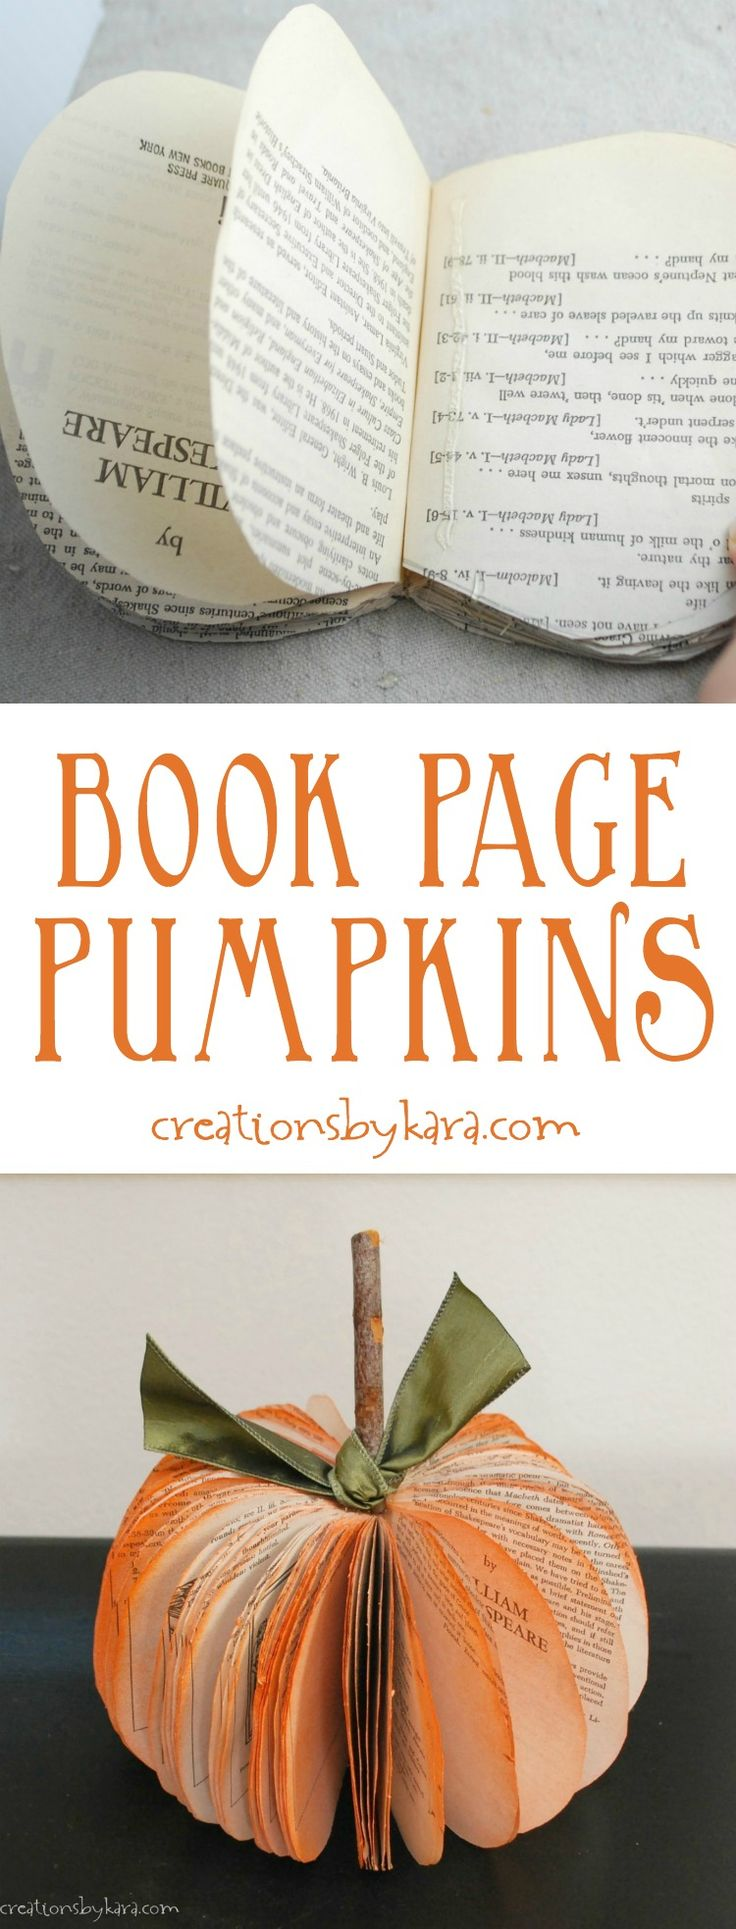 This Book Page Pumpkin is one of my most popular tutorials. Book page  pumpkins are